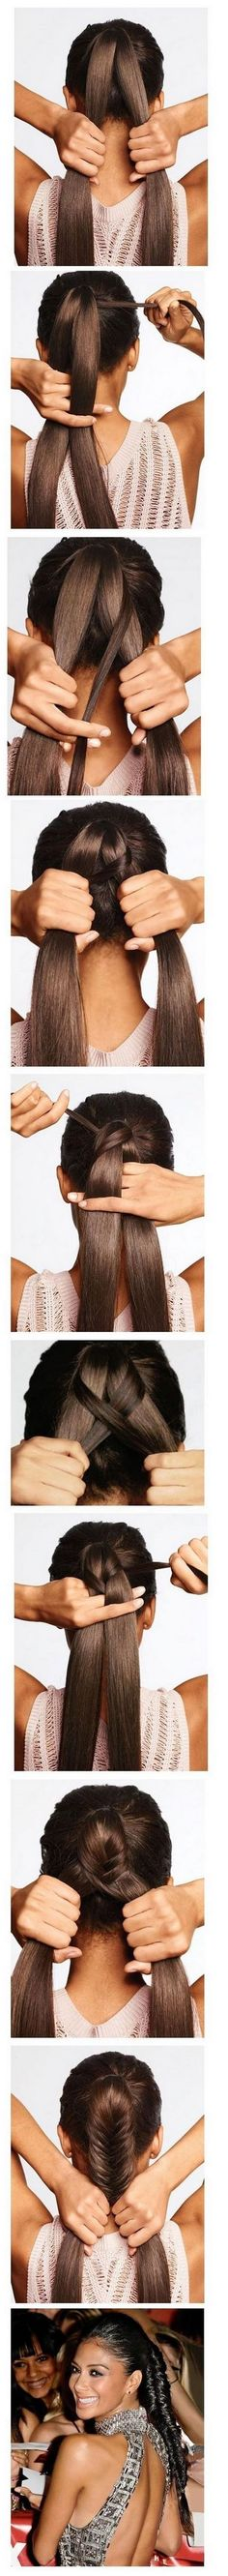 Easy hairstyles for everyday - Fishtail braid ponytail Pretty Hairstyles, Braided Hairstyles, Wedding Hairstyles, Fishtail Braids, Braid Ponytail, Updo, Hair Day, Hair Designs, Hair Looks